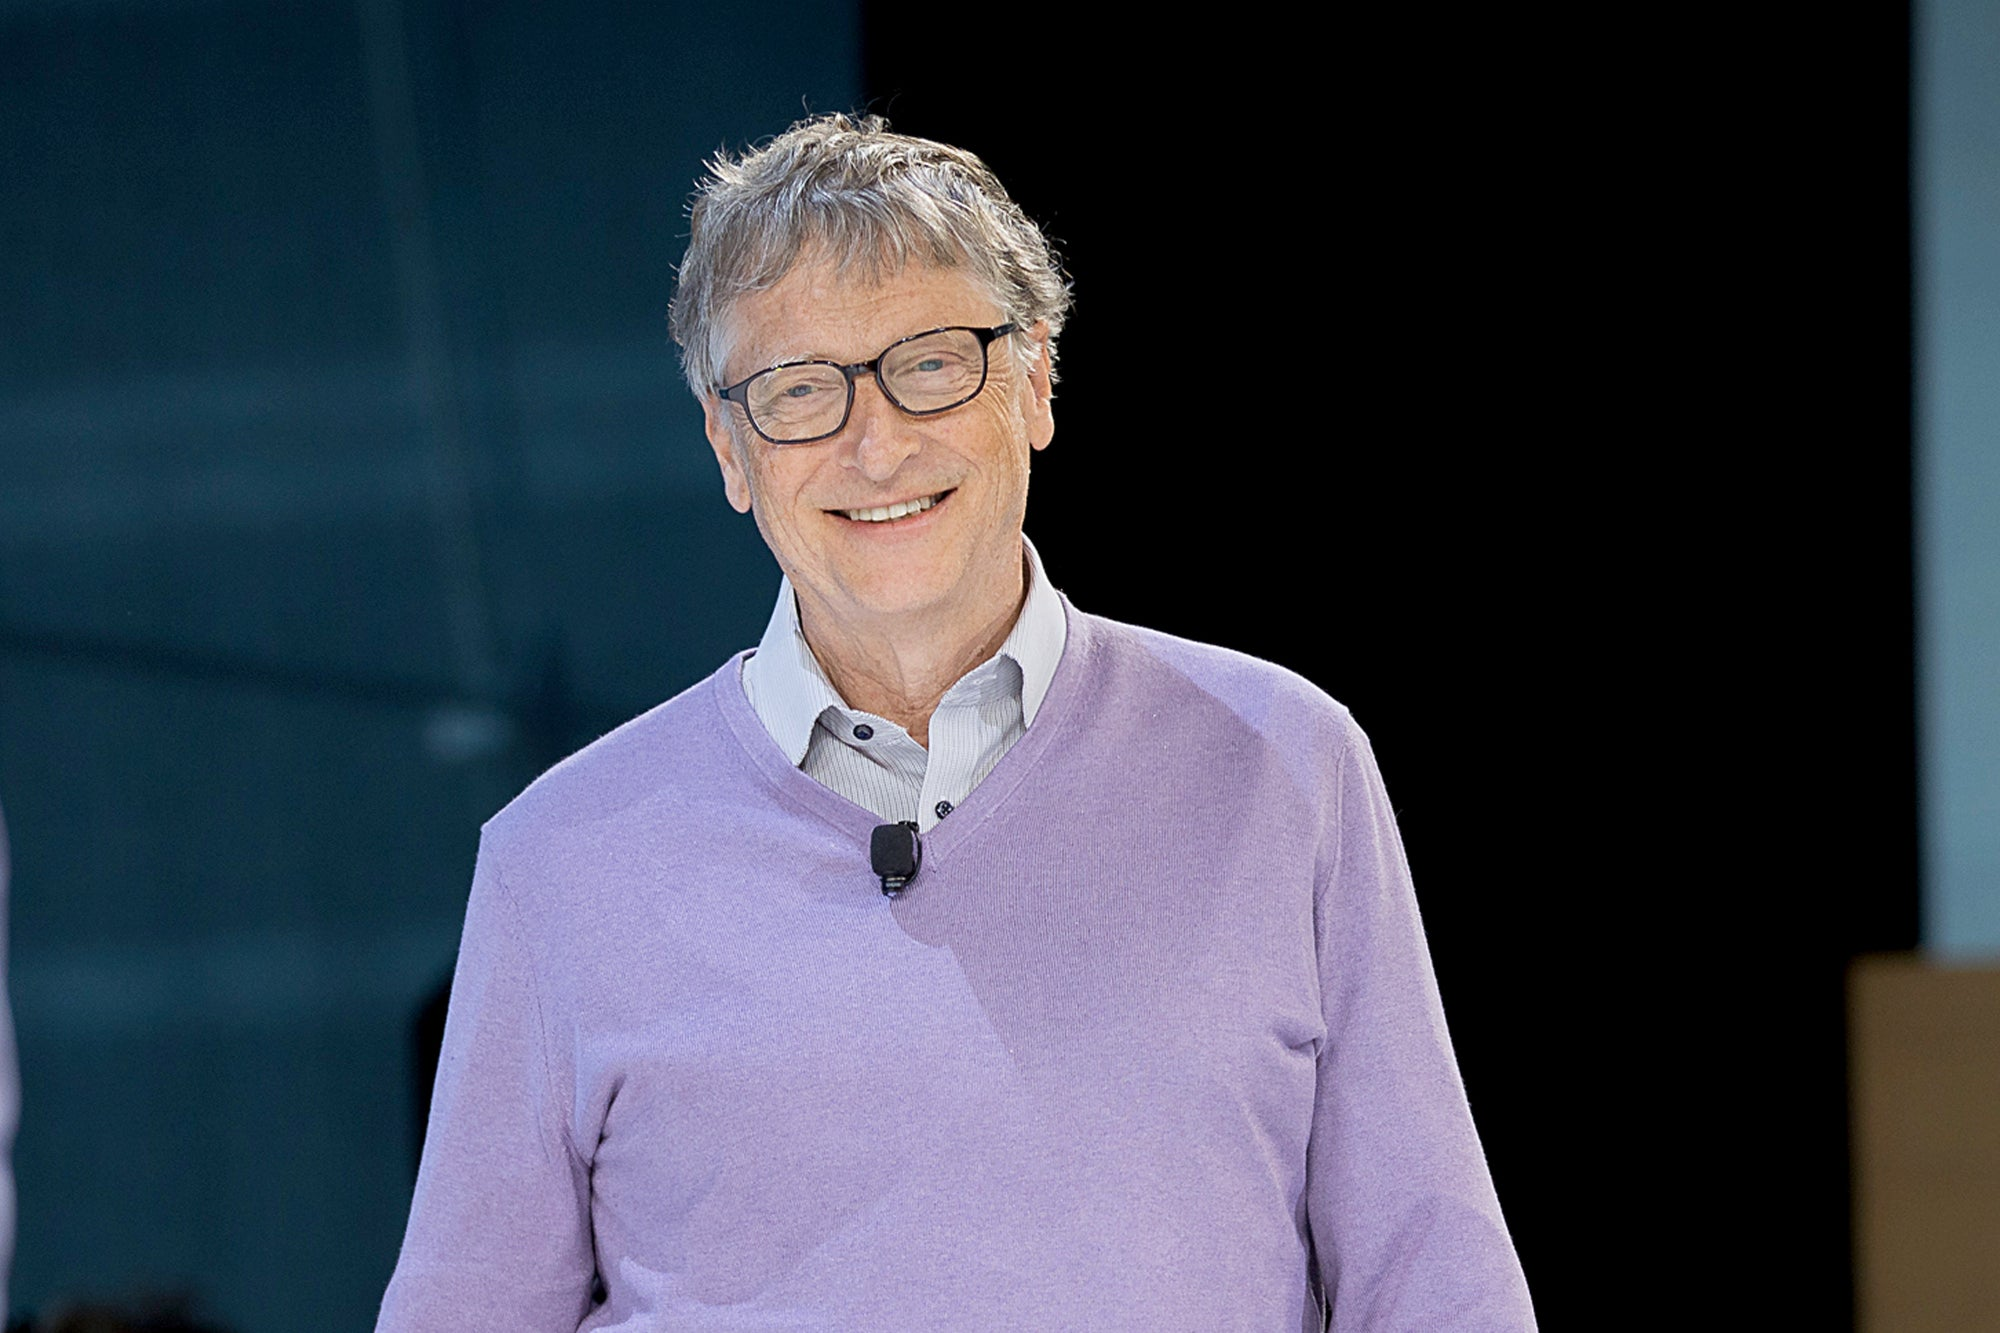 How Bill Gates Learned To Be An Empathetic Leader